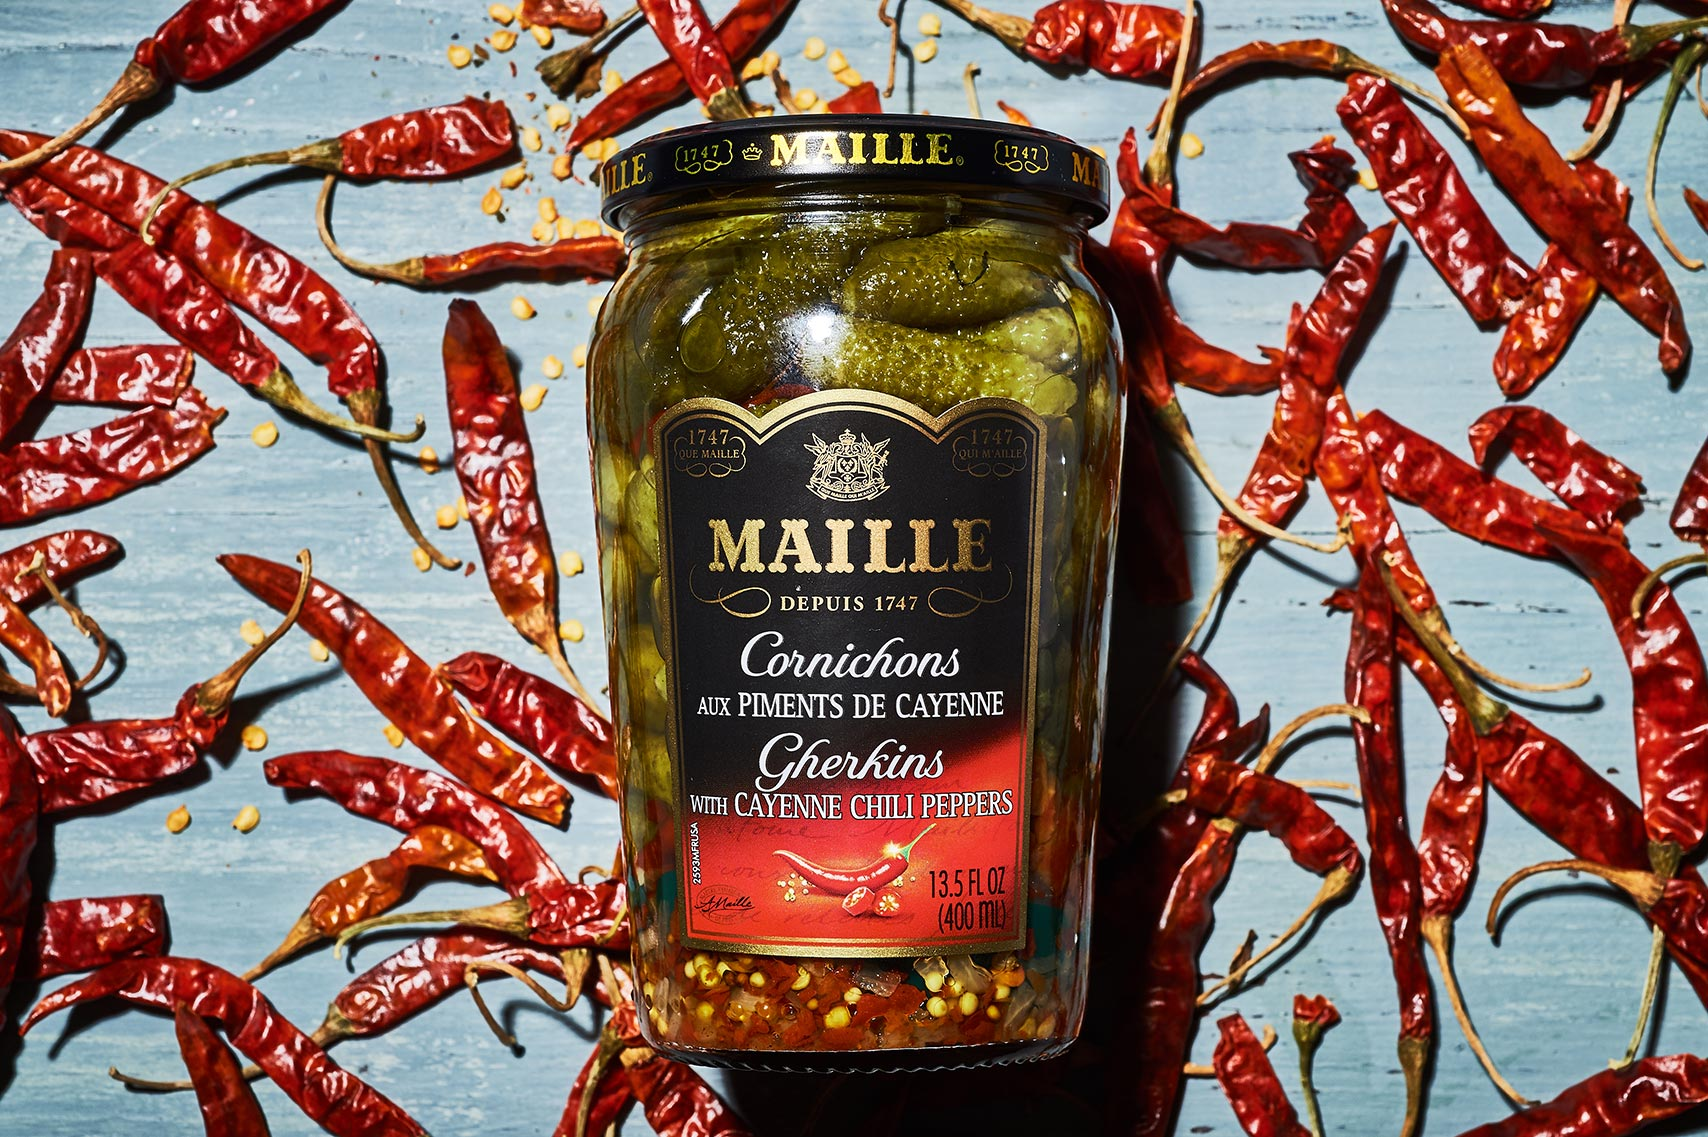 Maille-Mustard-product-advertising-social-media-Jennifer-May